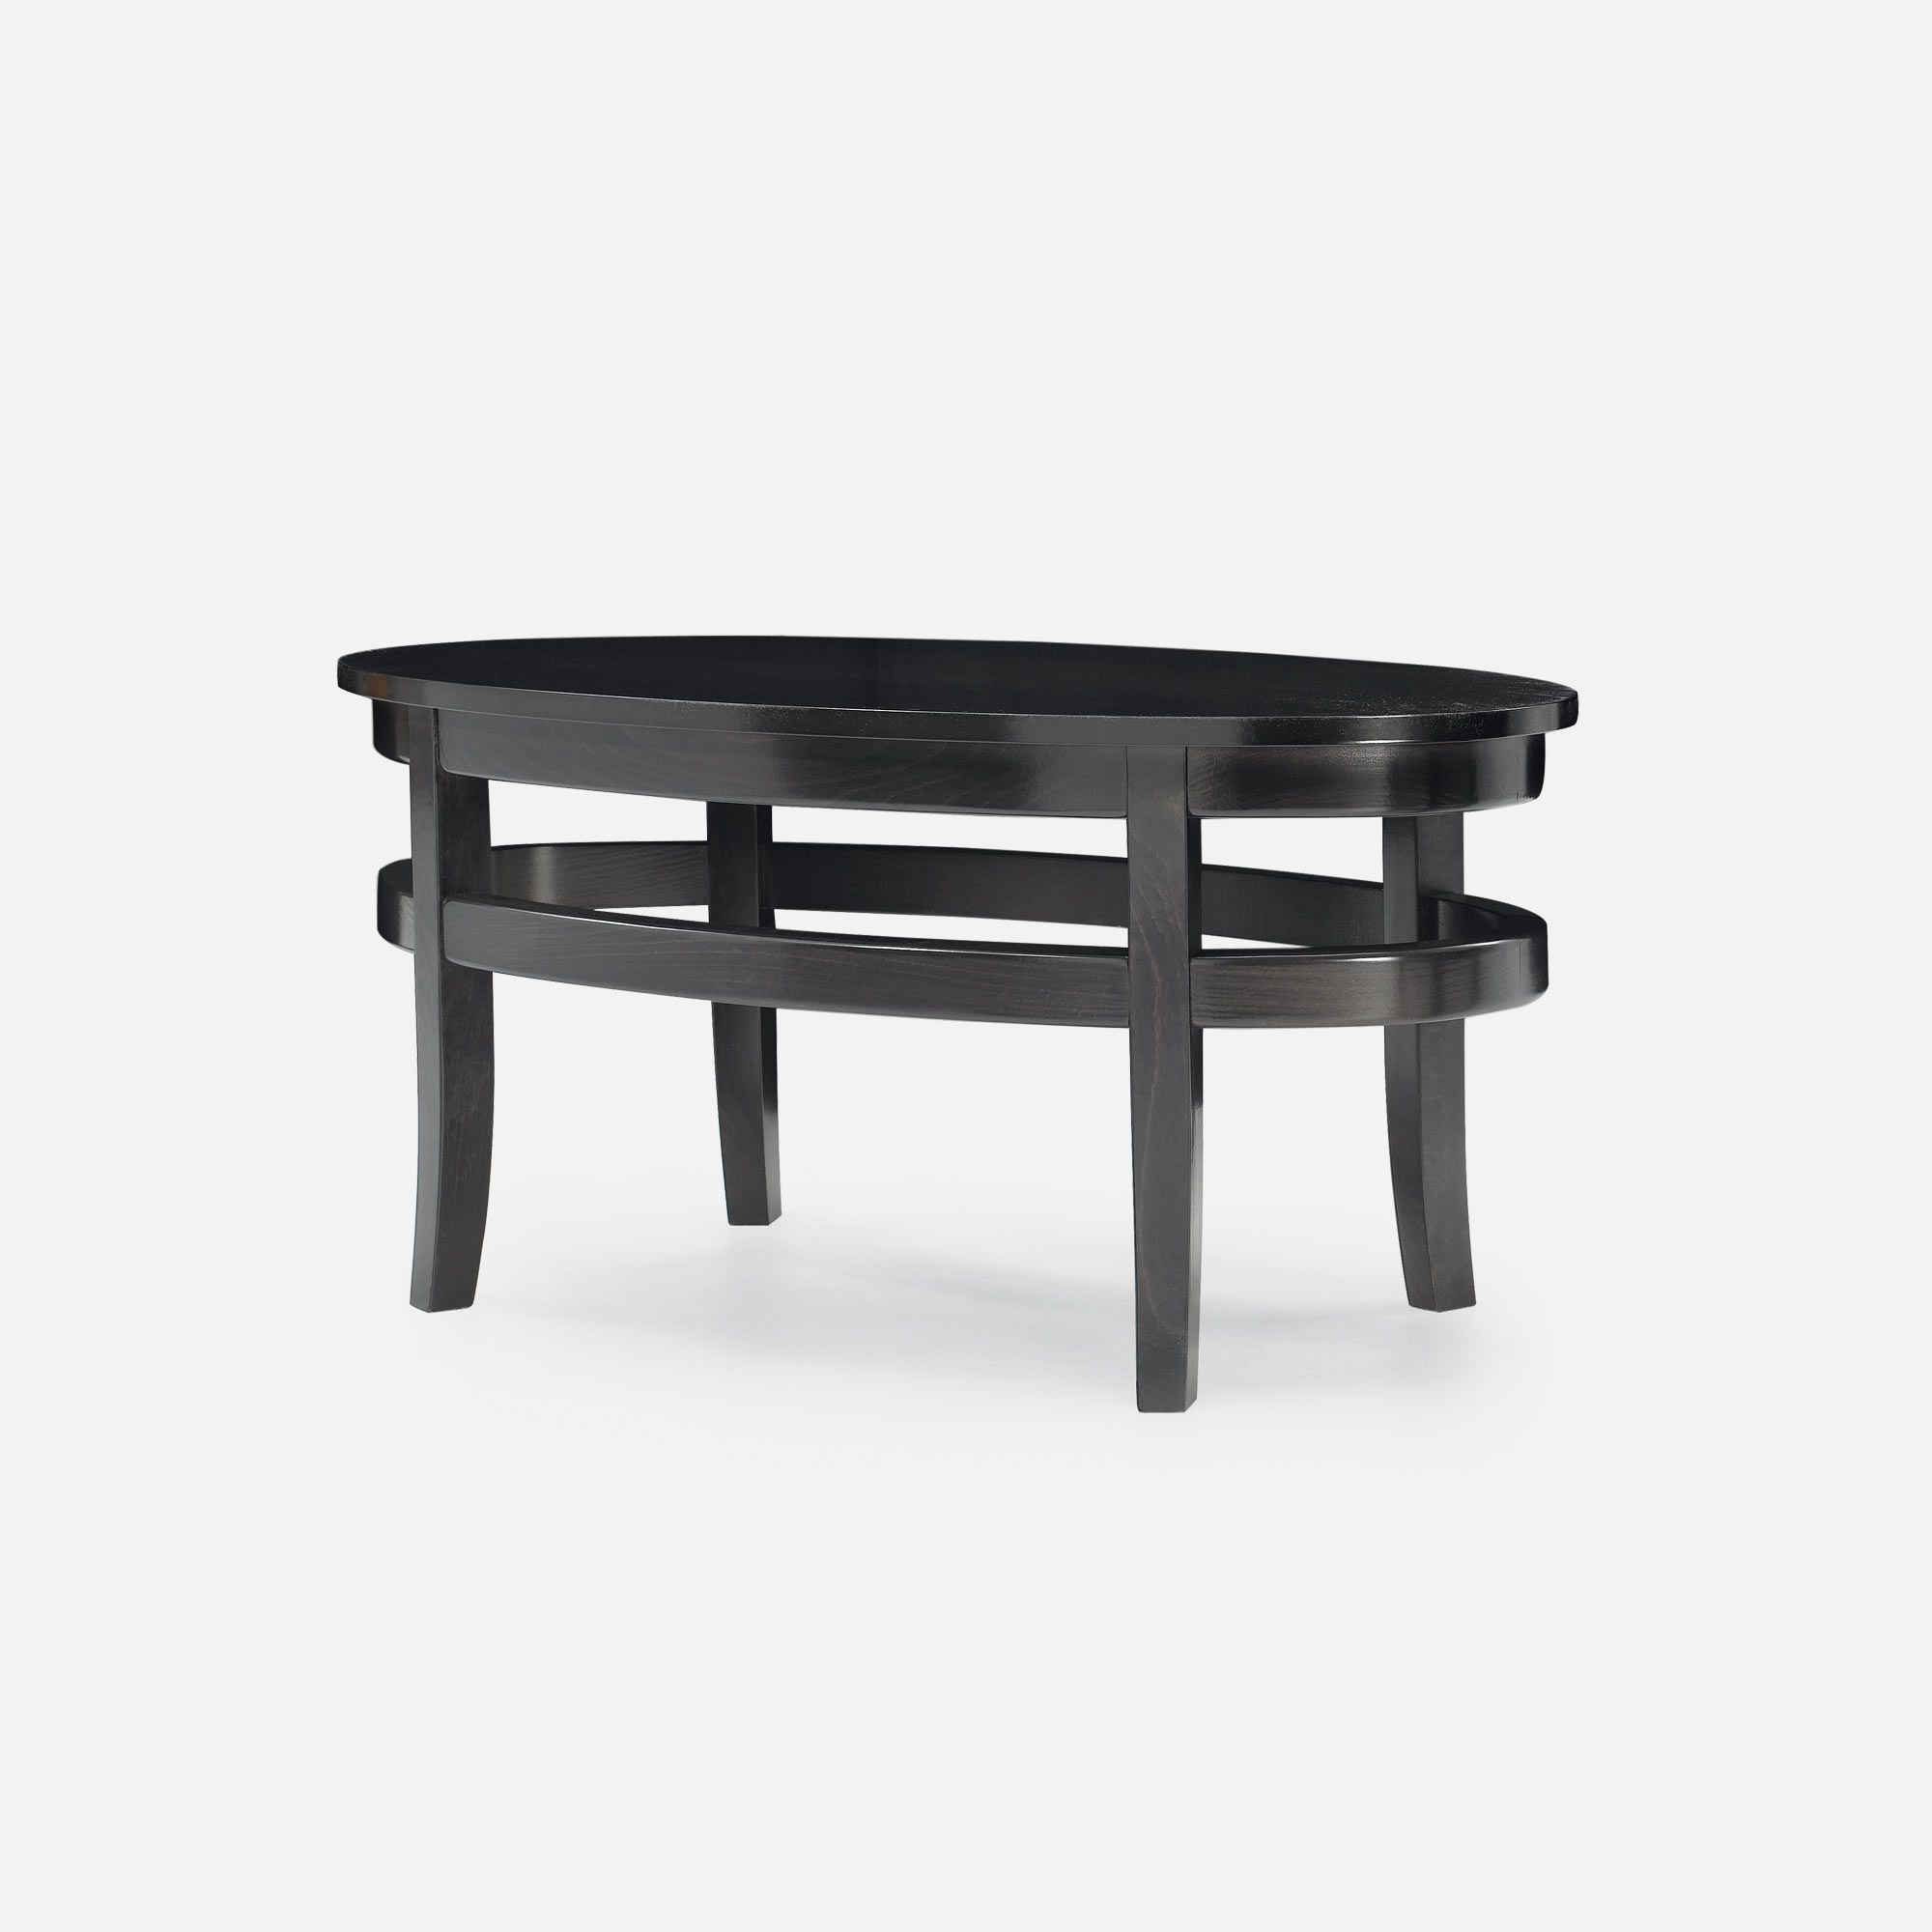 table basse 50 cm hauteur table basse hauteur cm jardiniare basse hauteur cm table basse ronde. Black Bedroom Furniture Sets. Home Design Ideas